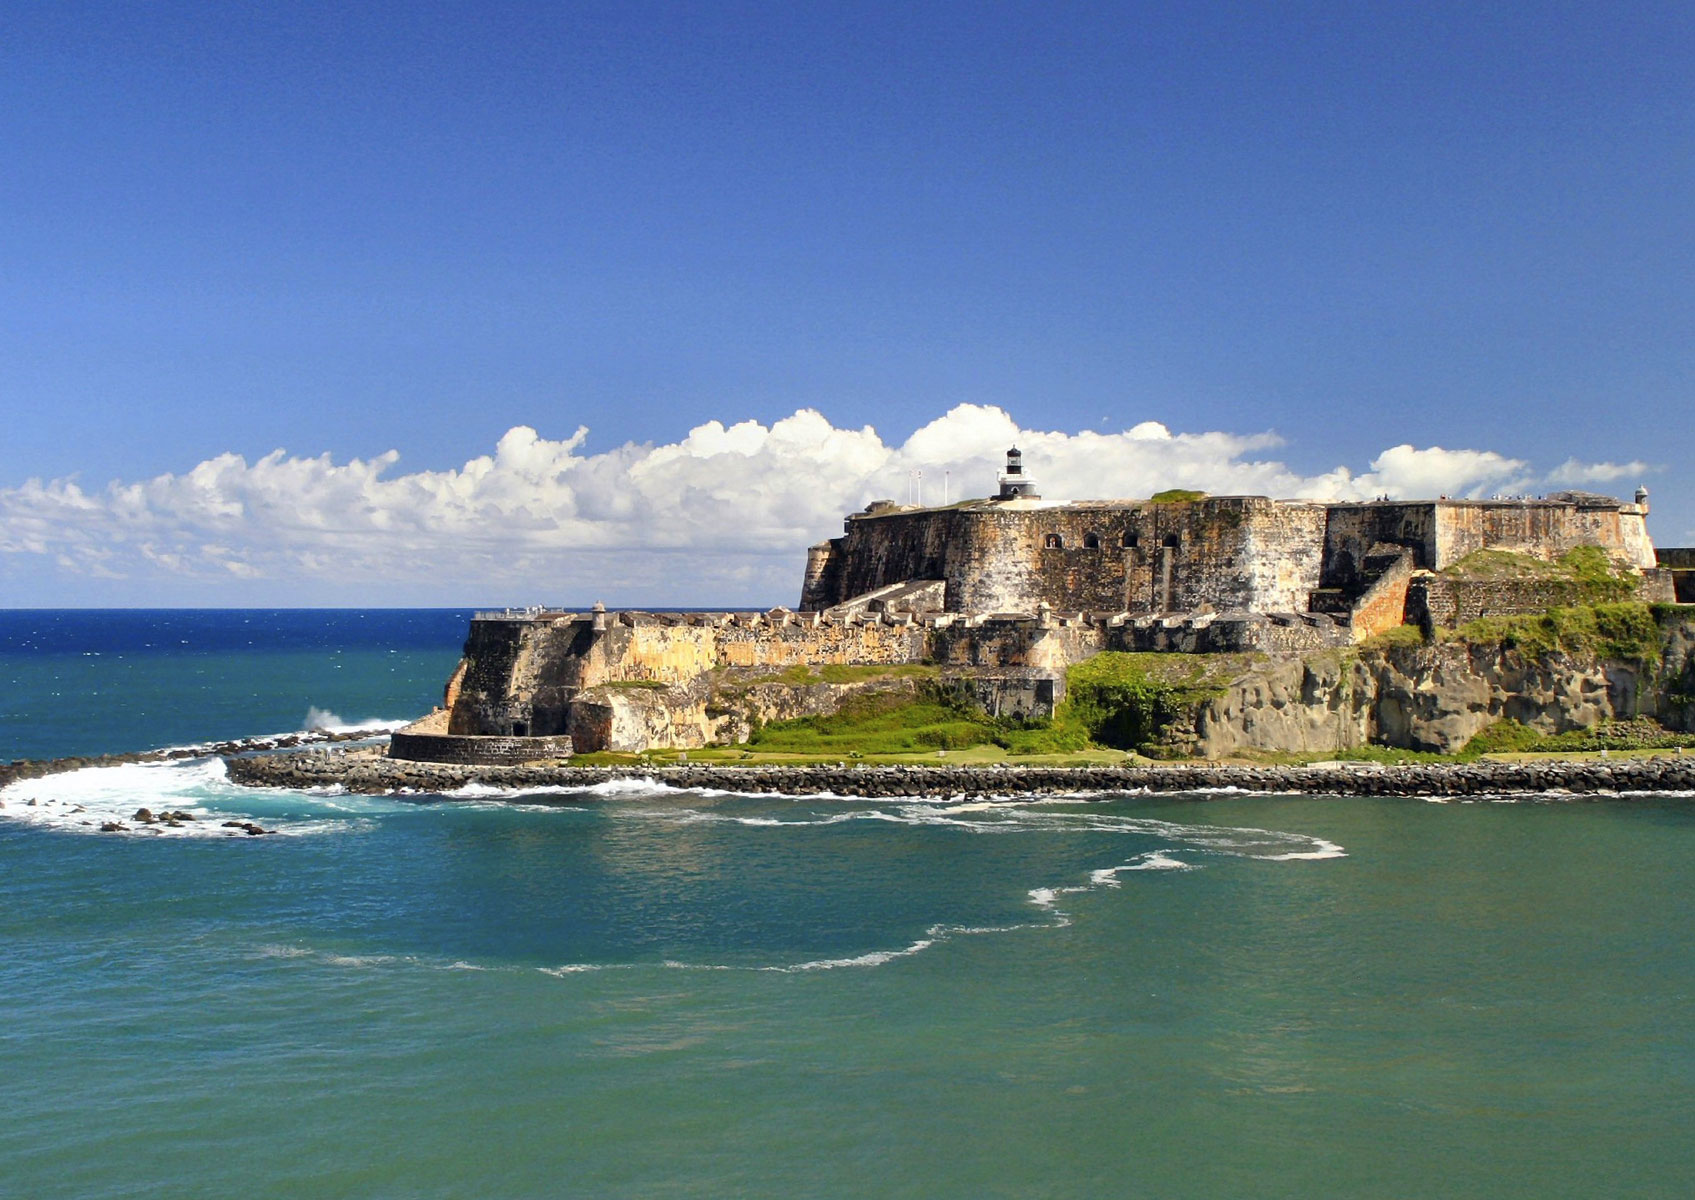 Group Adventure Sightseeing And Aquatic Tours In Puerto Rico